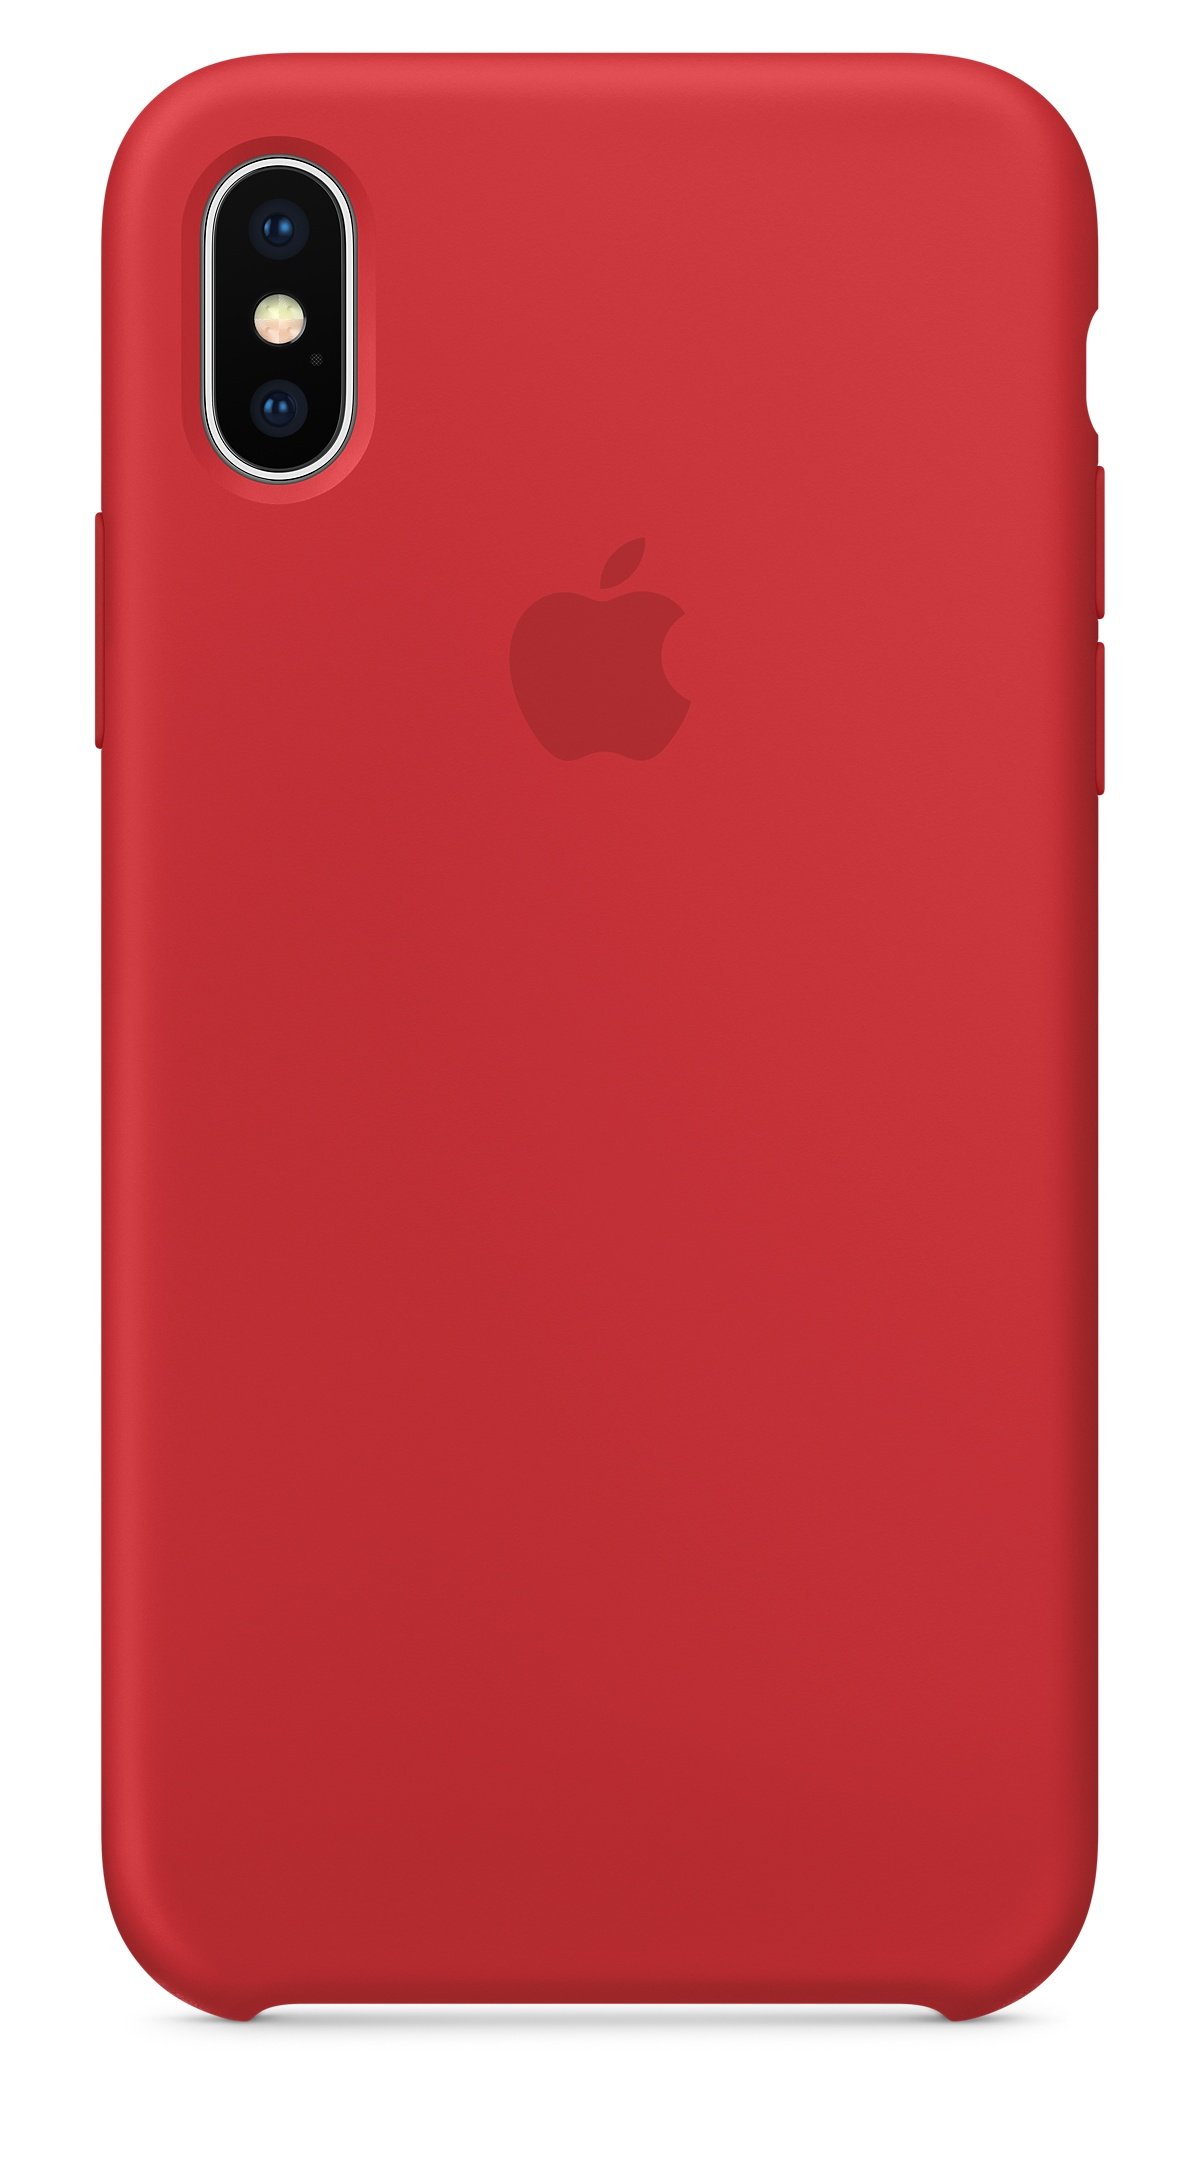 iPhone X Silicone Case - (PRODUCT)RED - Apple